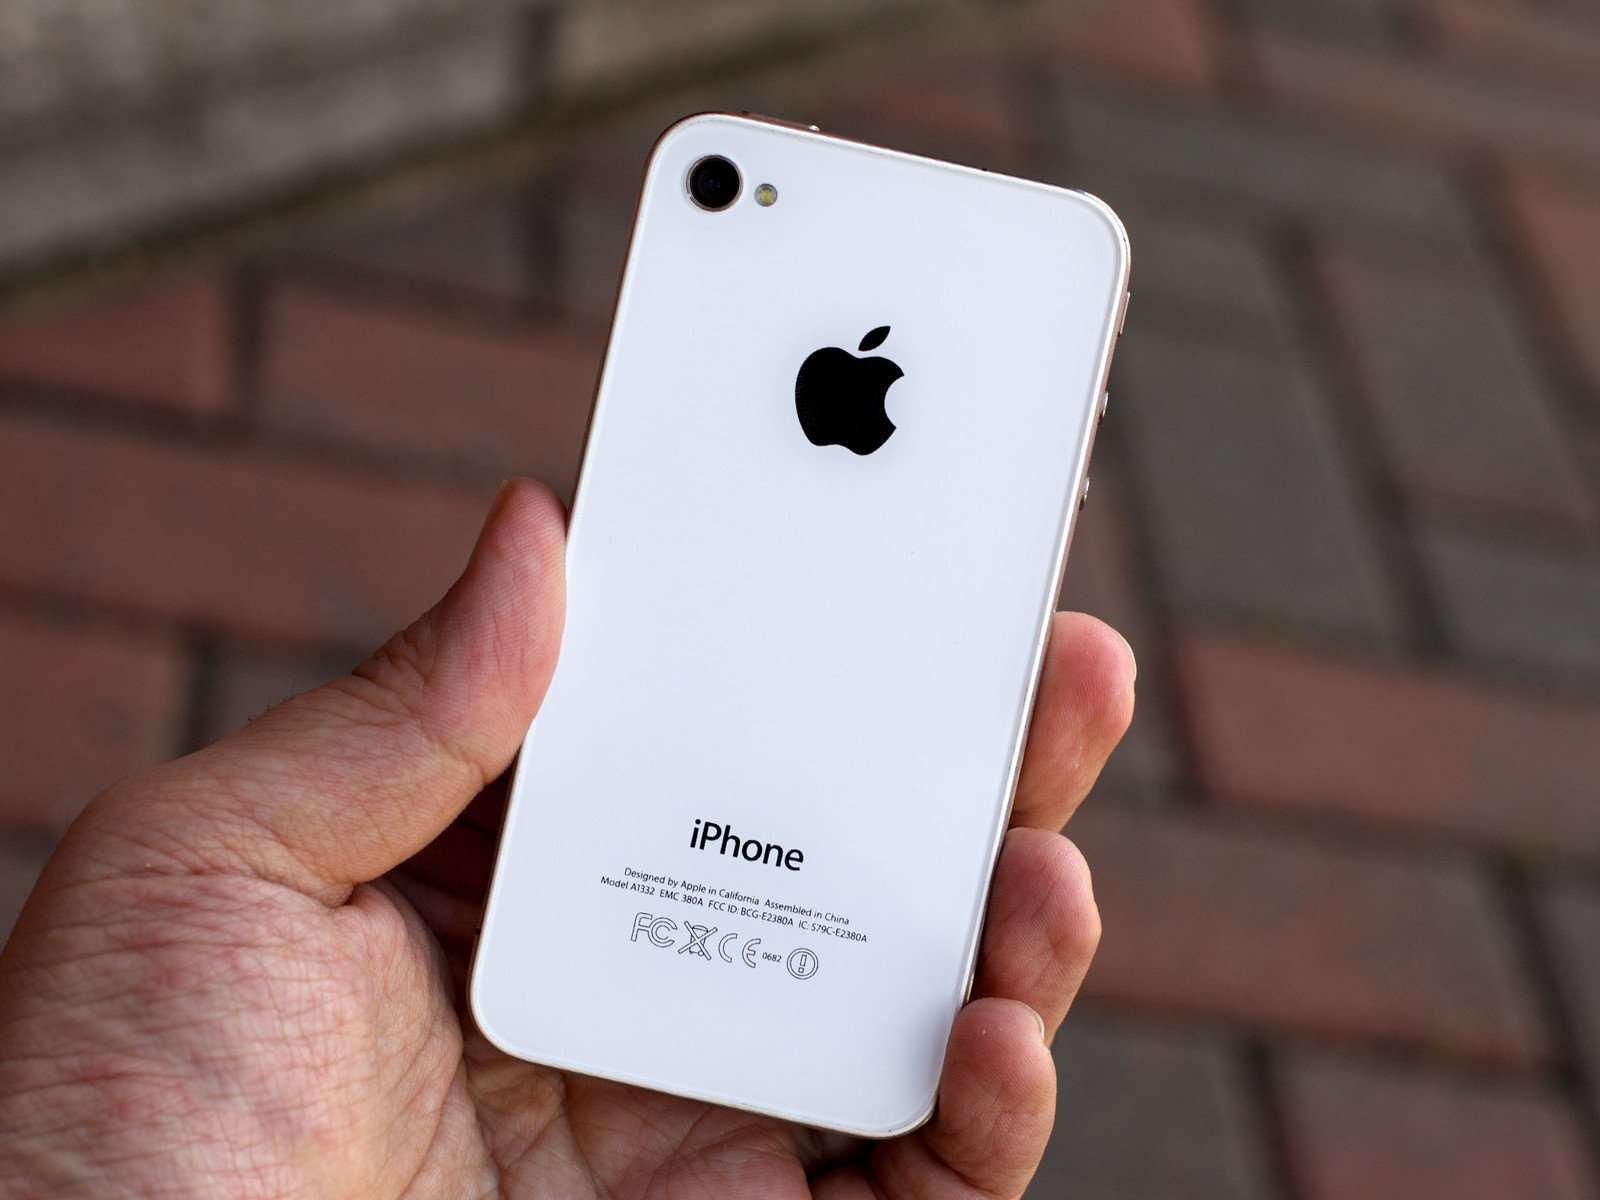 Used iPhone 4 vs 4s: Which should you buy? | iMore